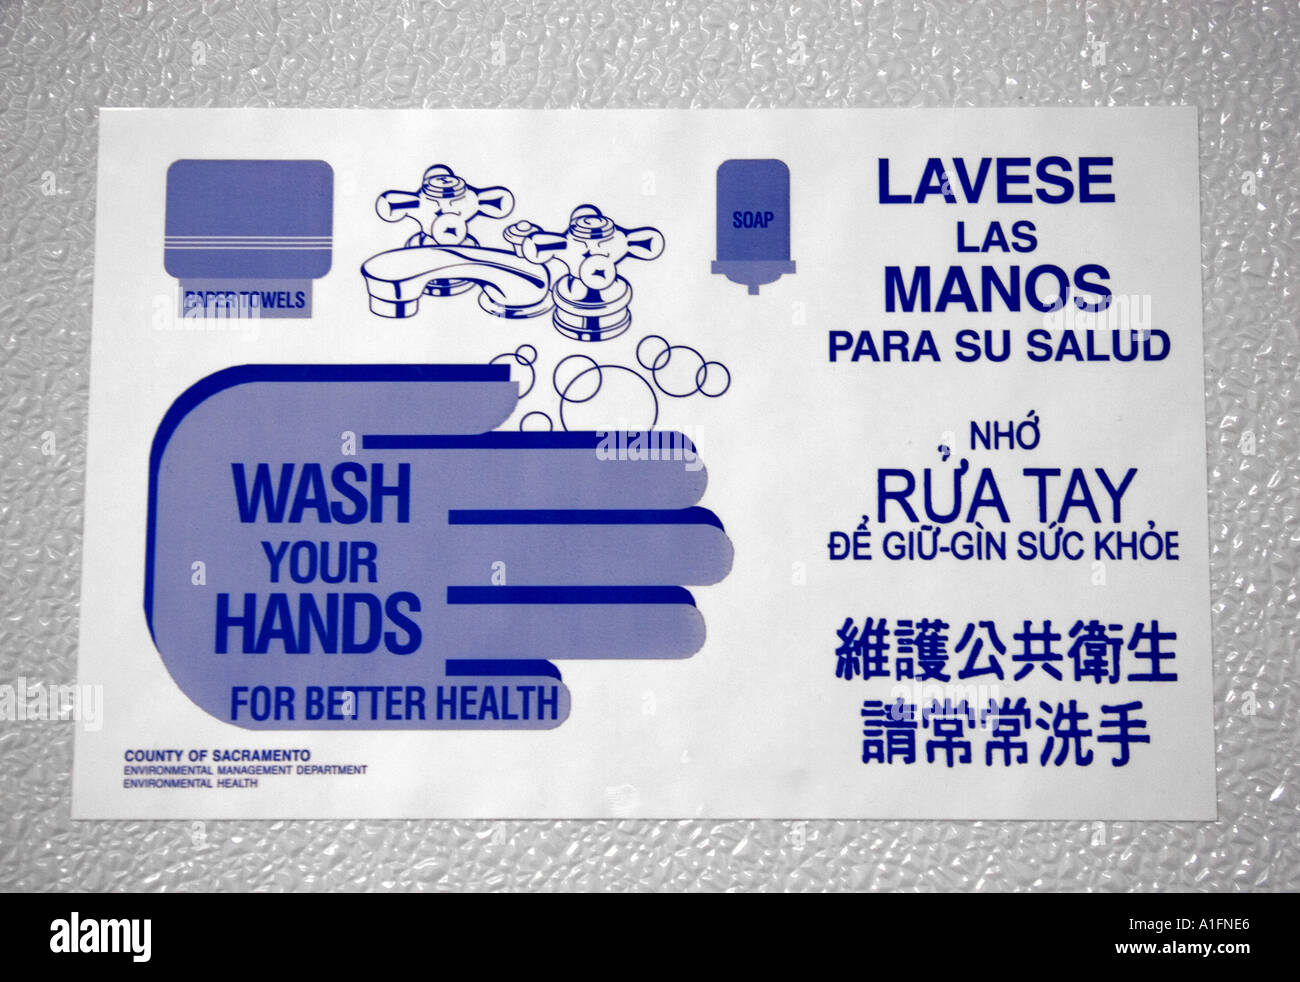 Korean Bathroom Signs wash your hands sign in a bathroom showing different languages